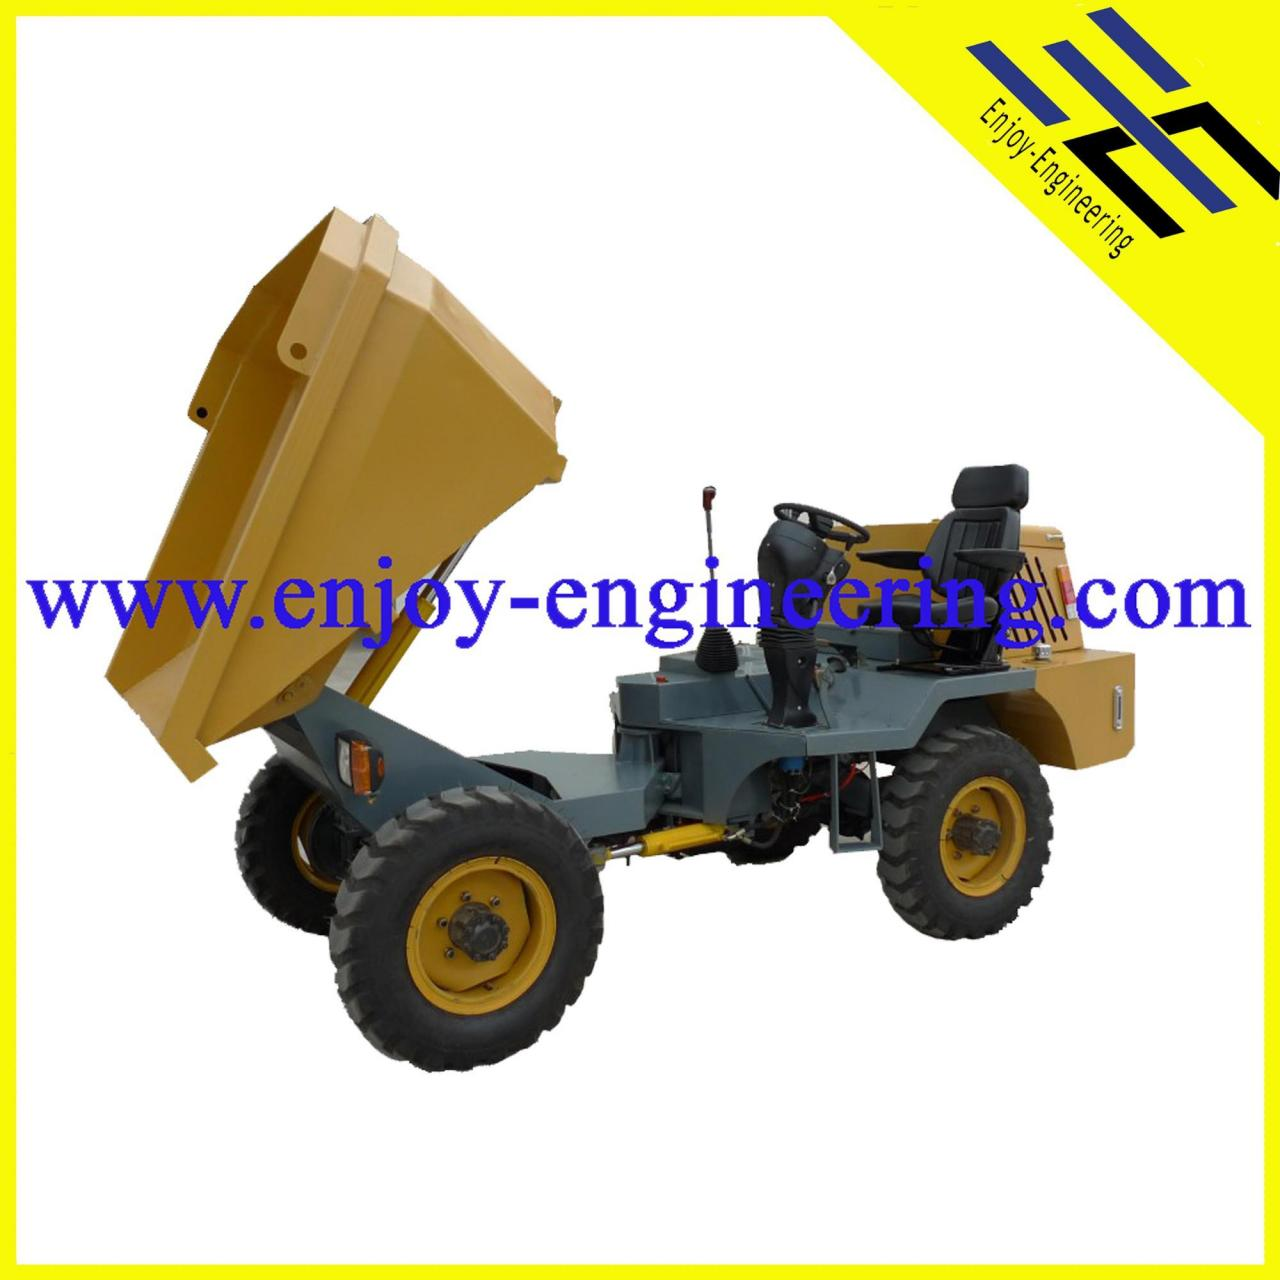 Quality MINING MACHINE Site dumper SD20-A for sale